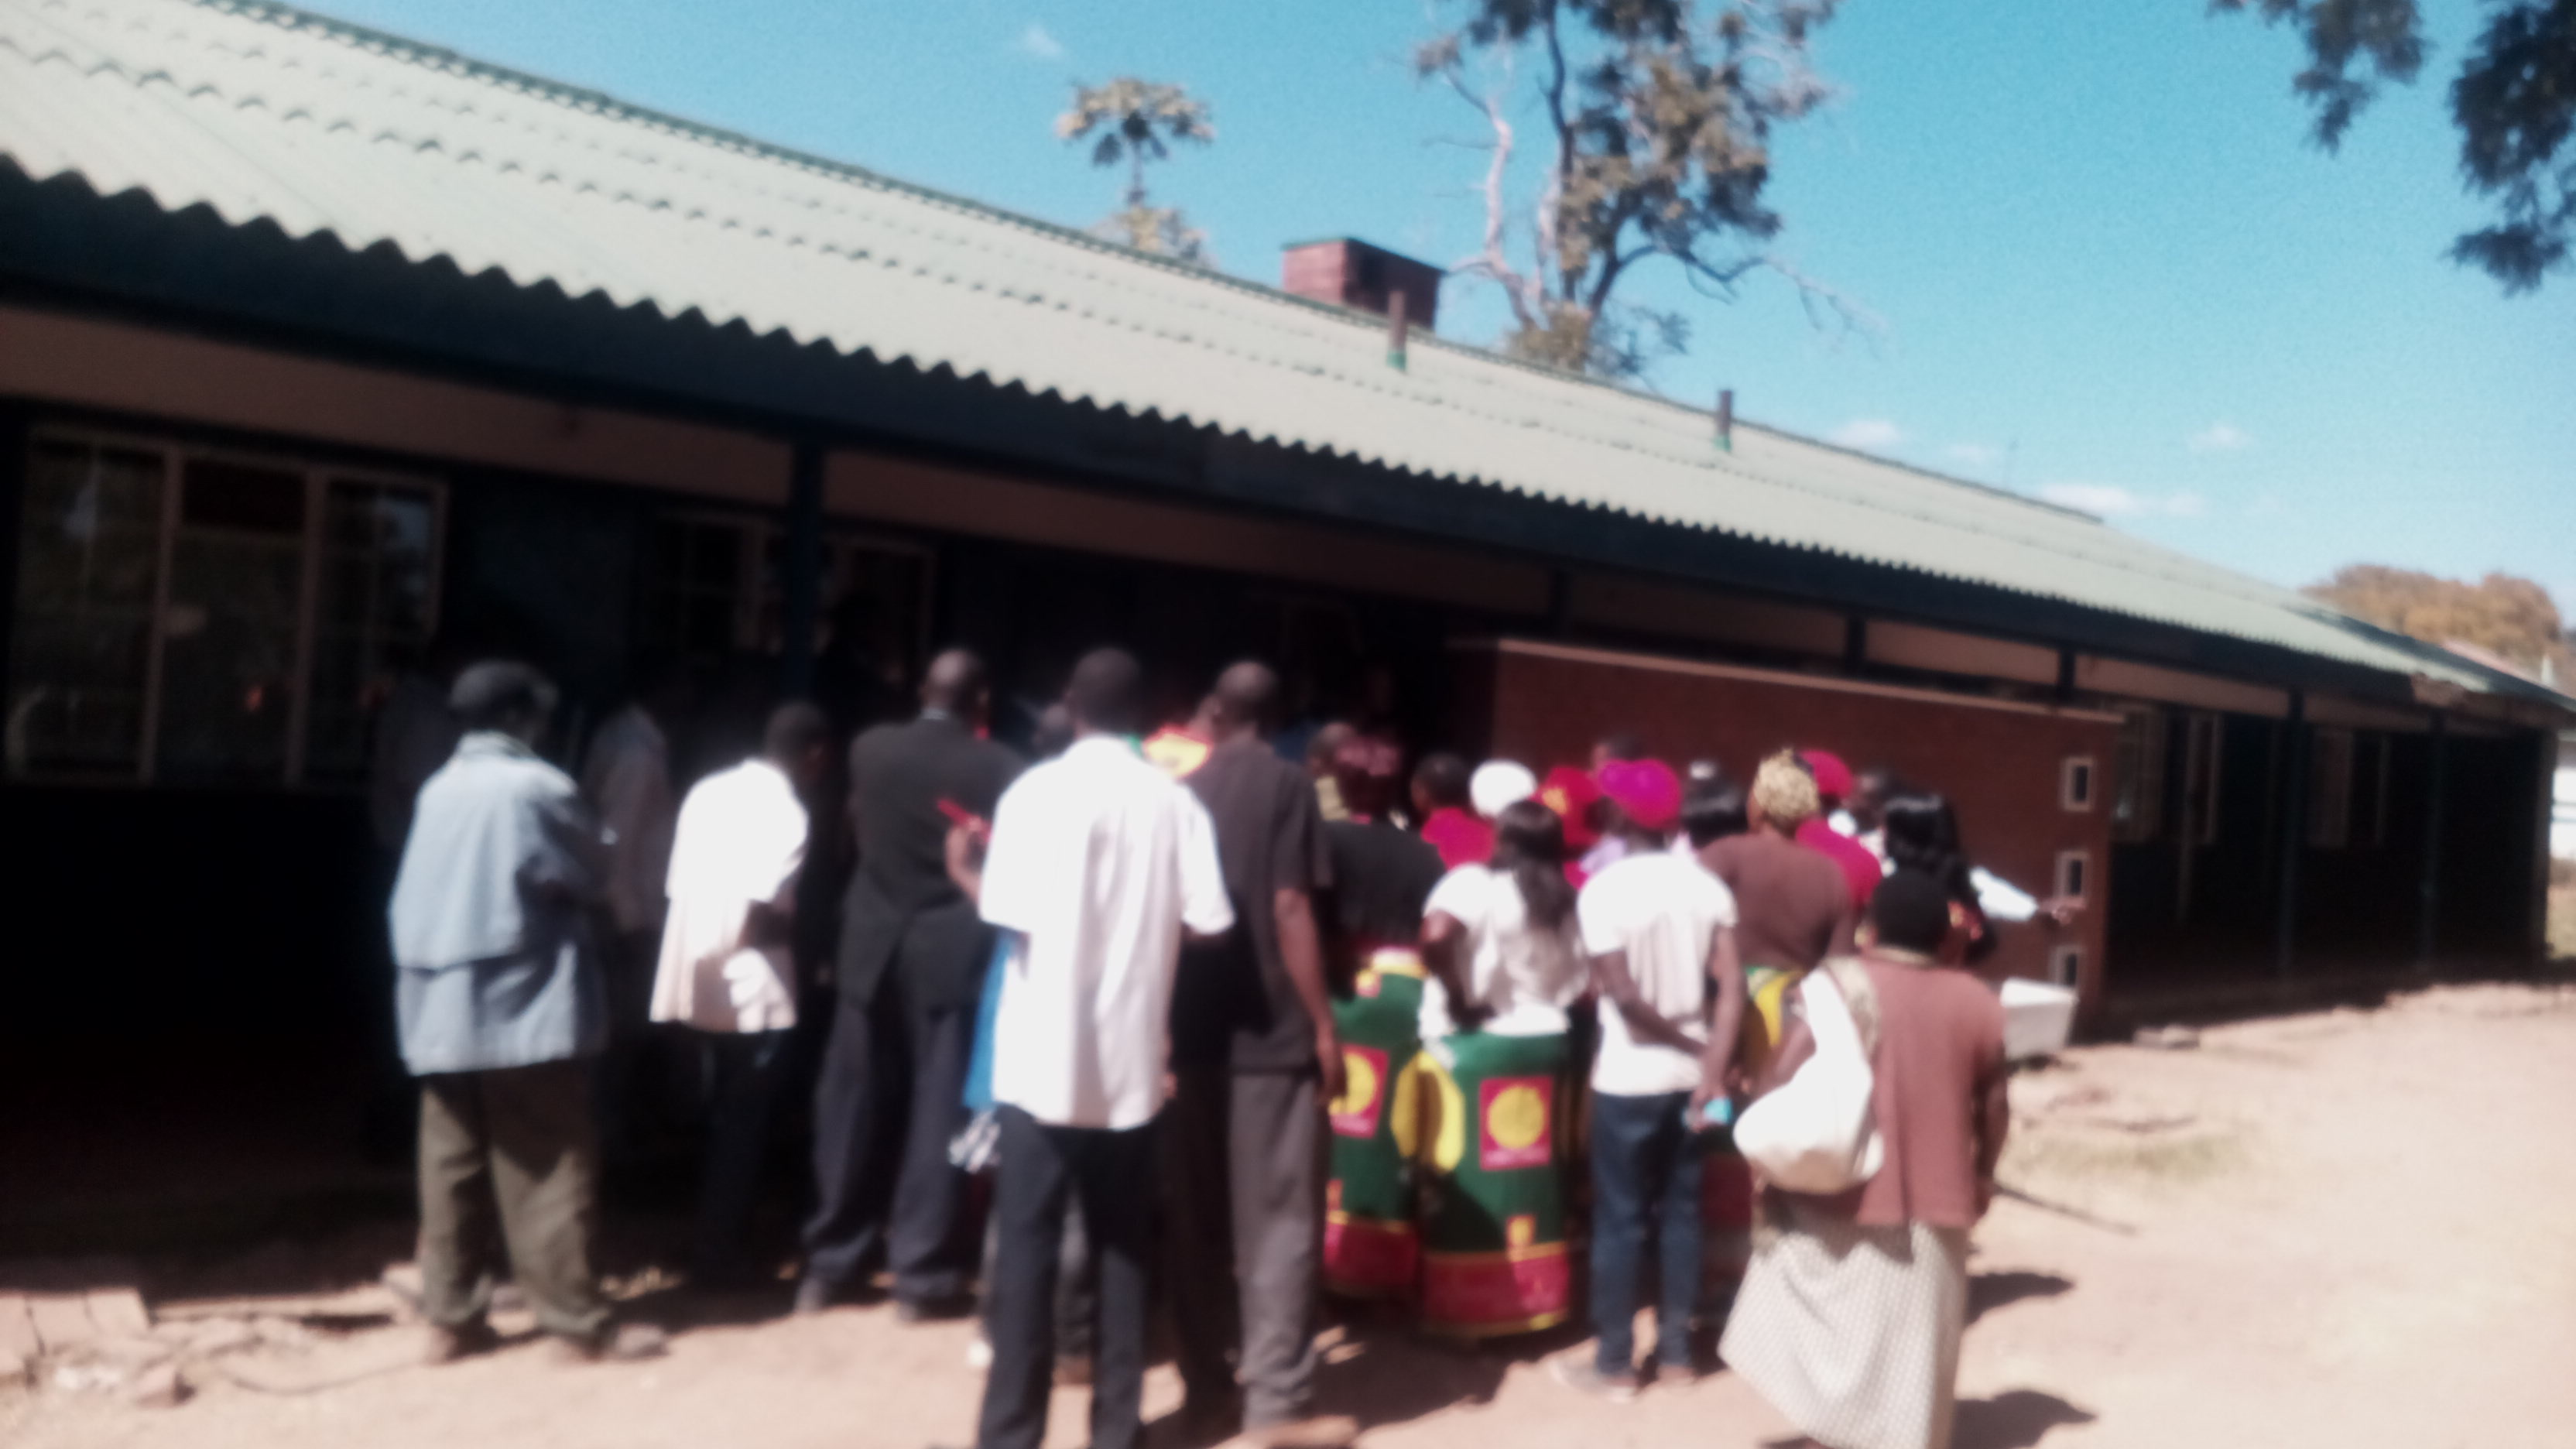 Saidi Chibwana's supporters throng Kabwe central police station